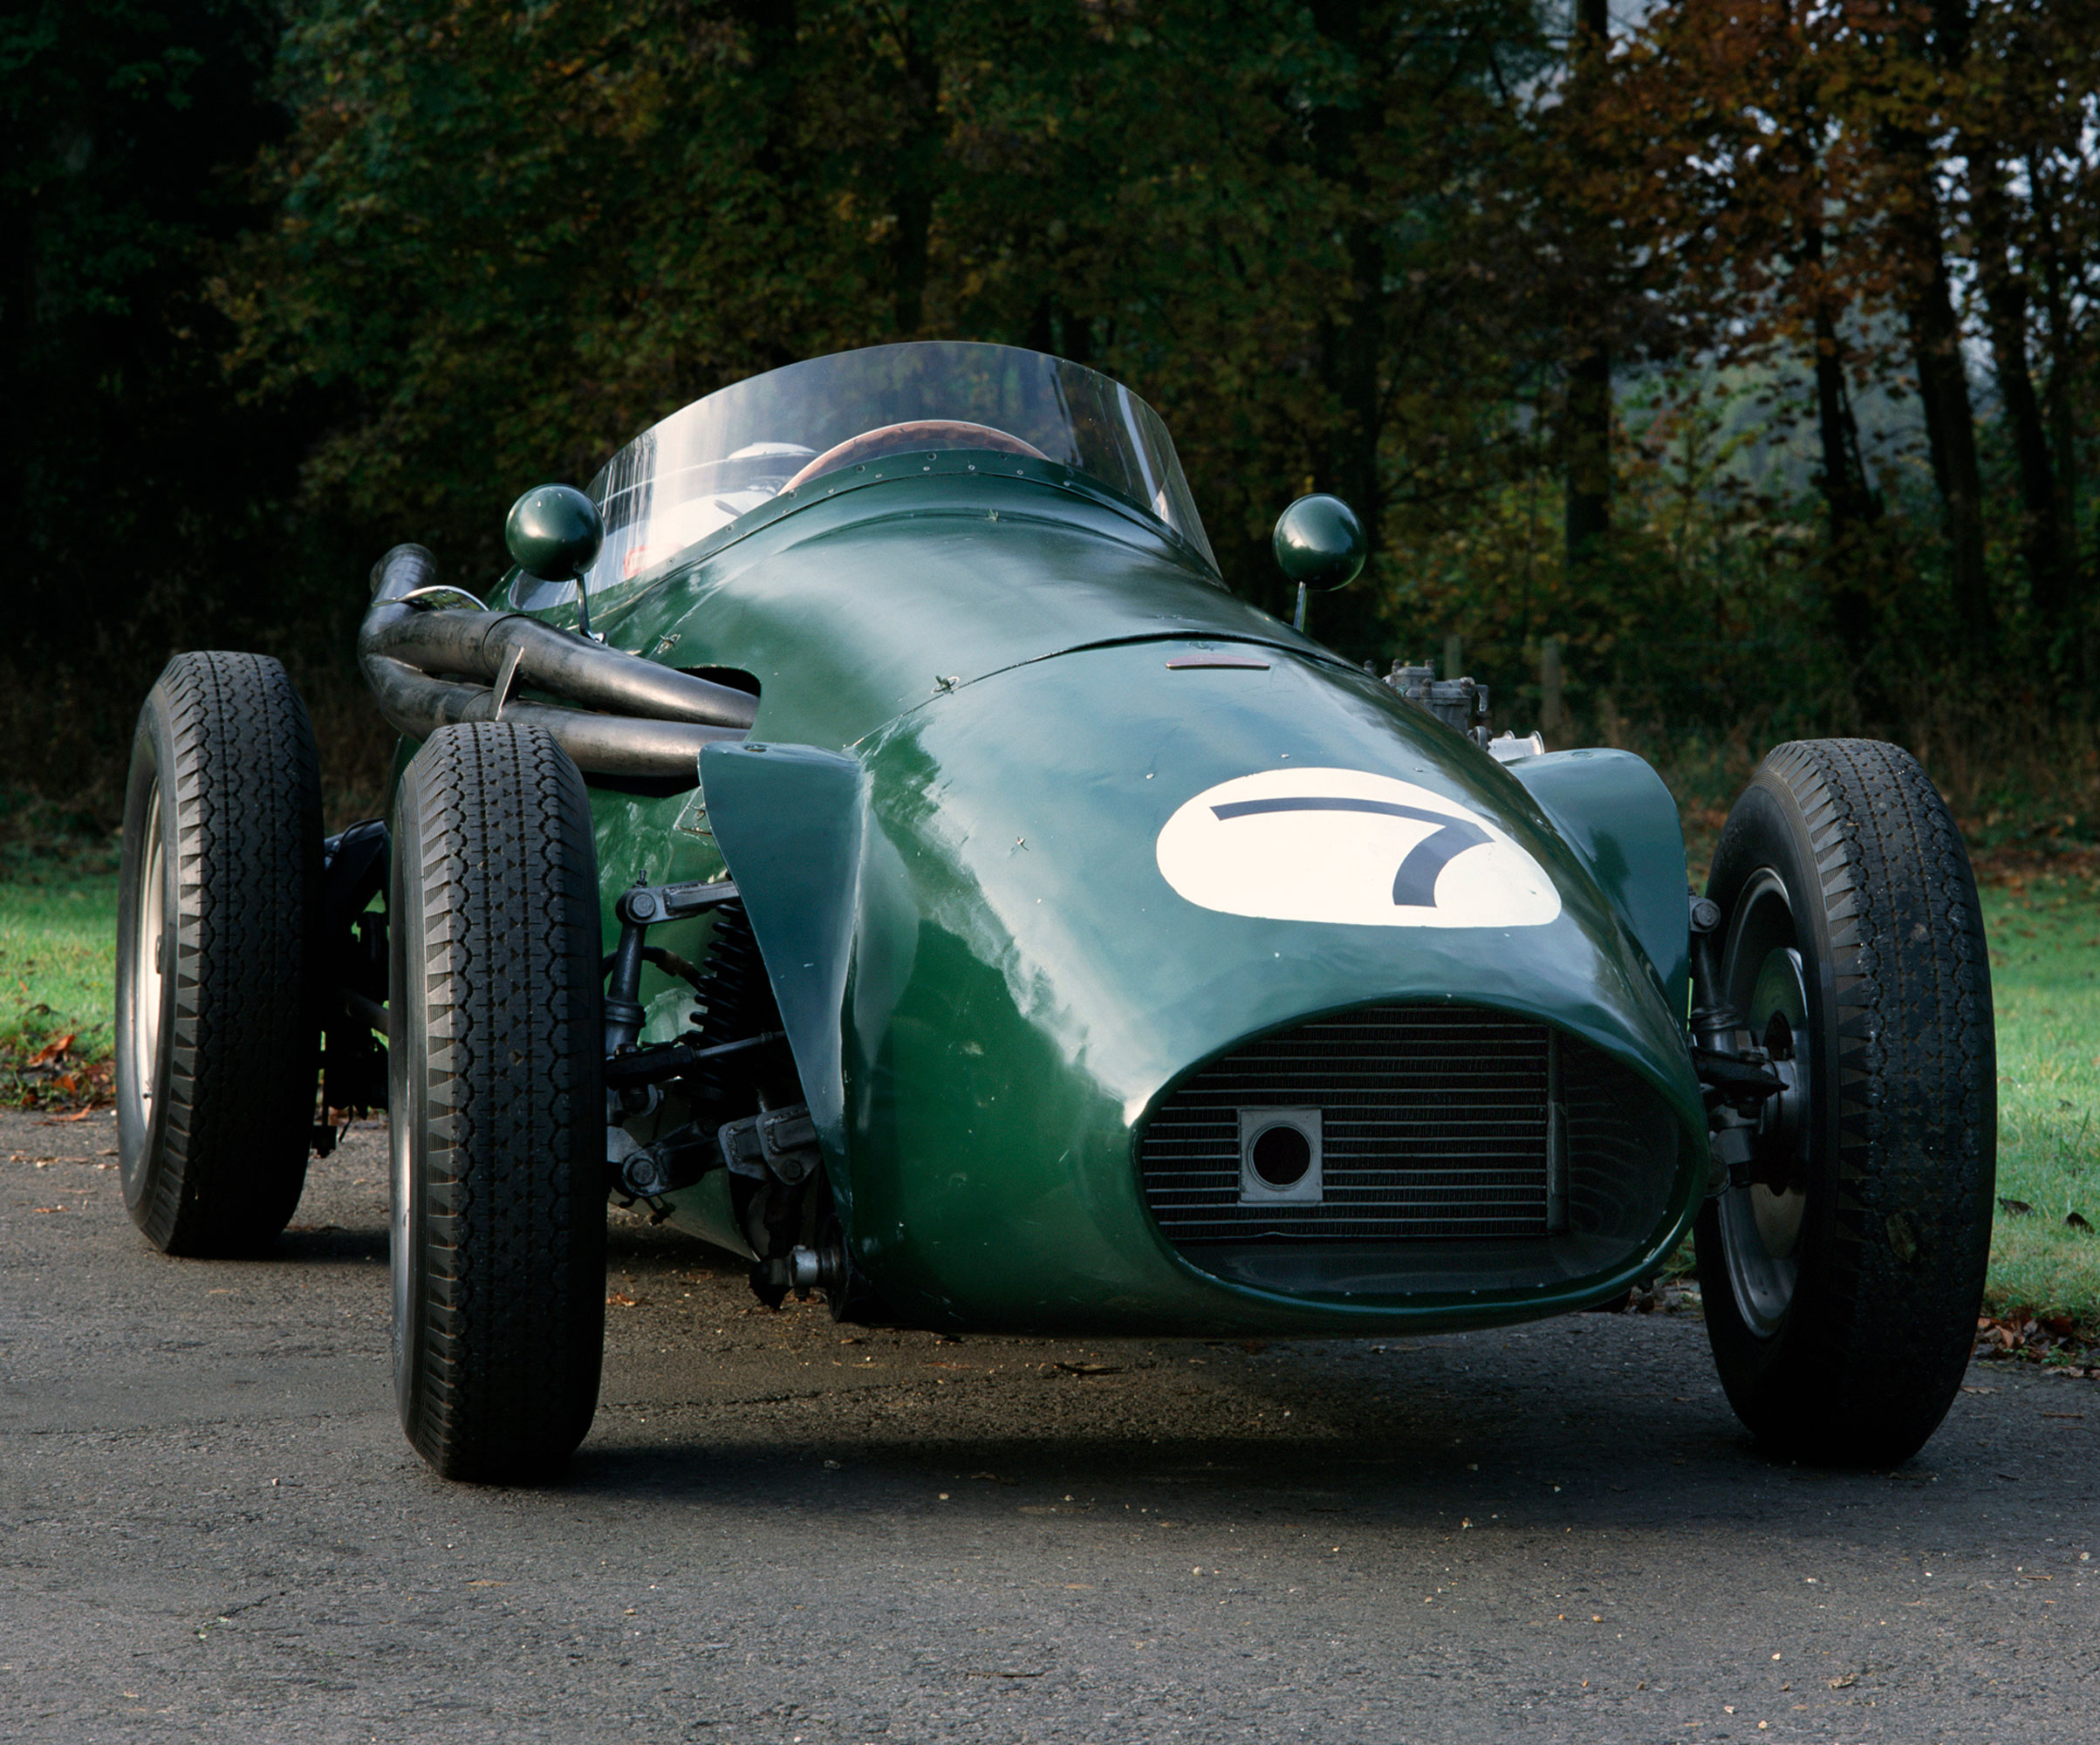 1955 Connaught B-Type Formula One car